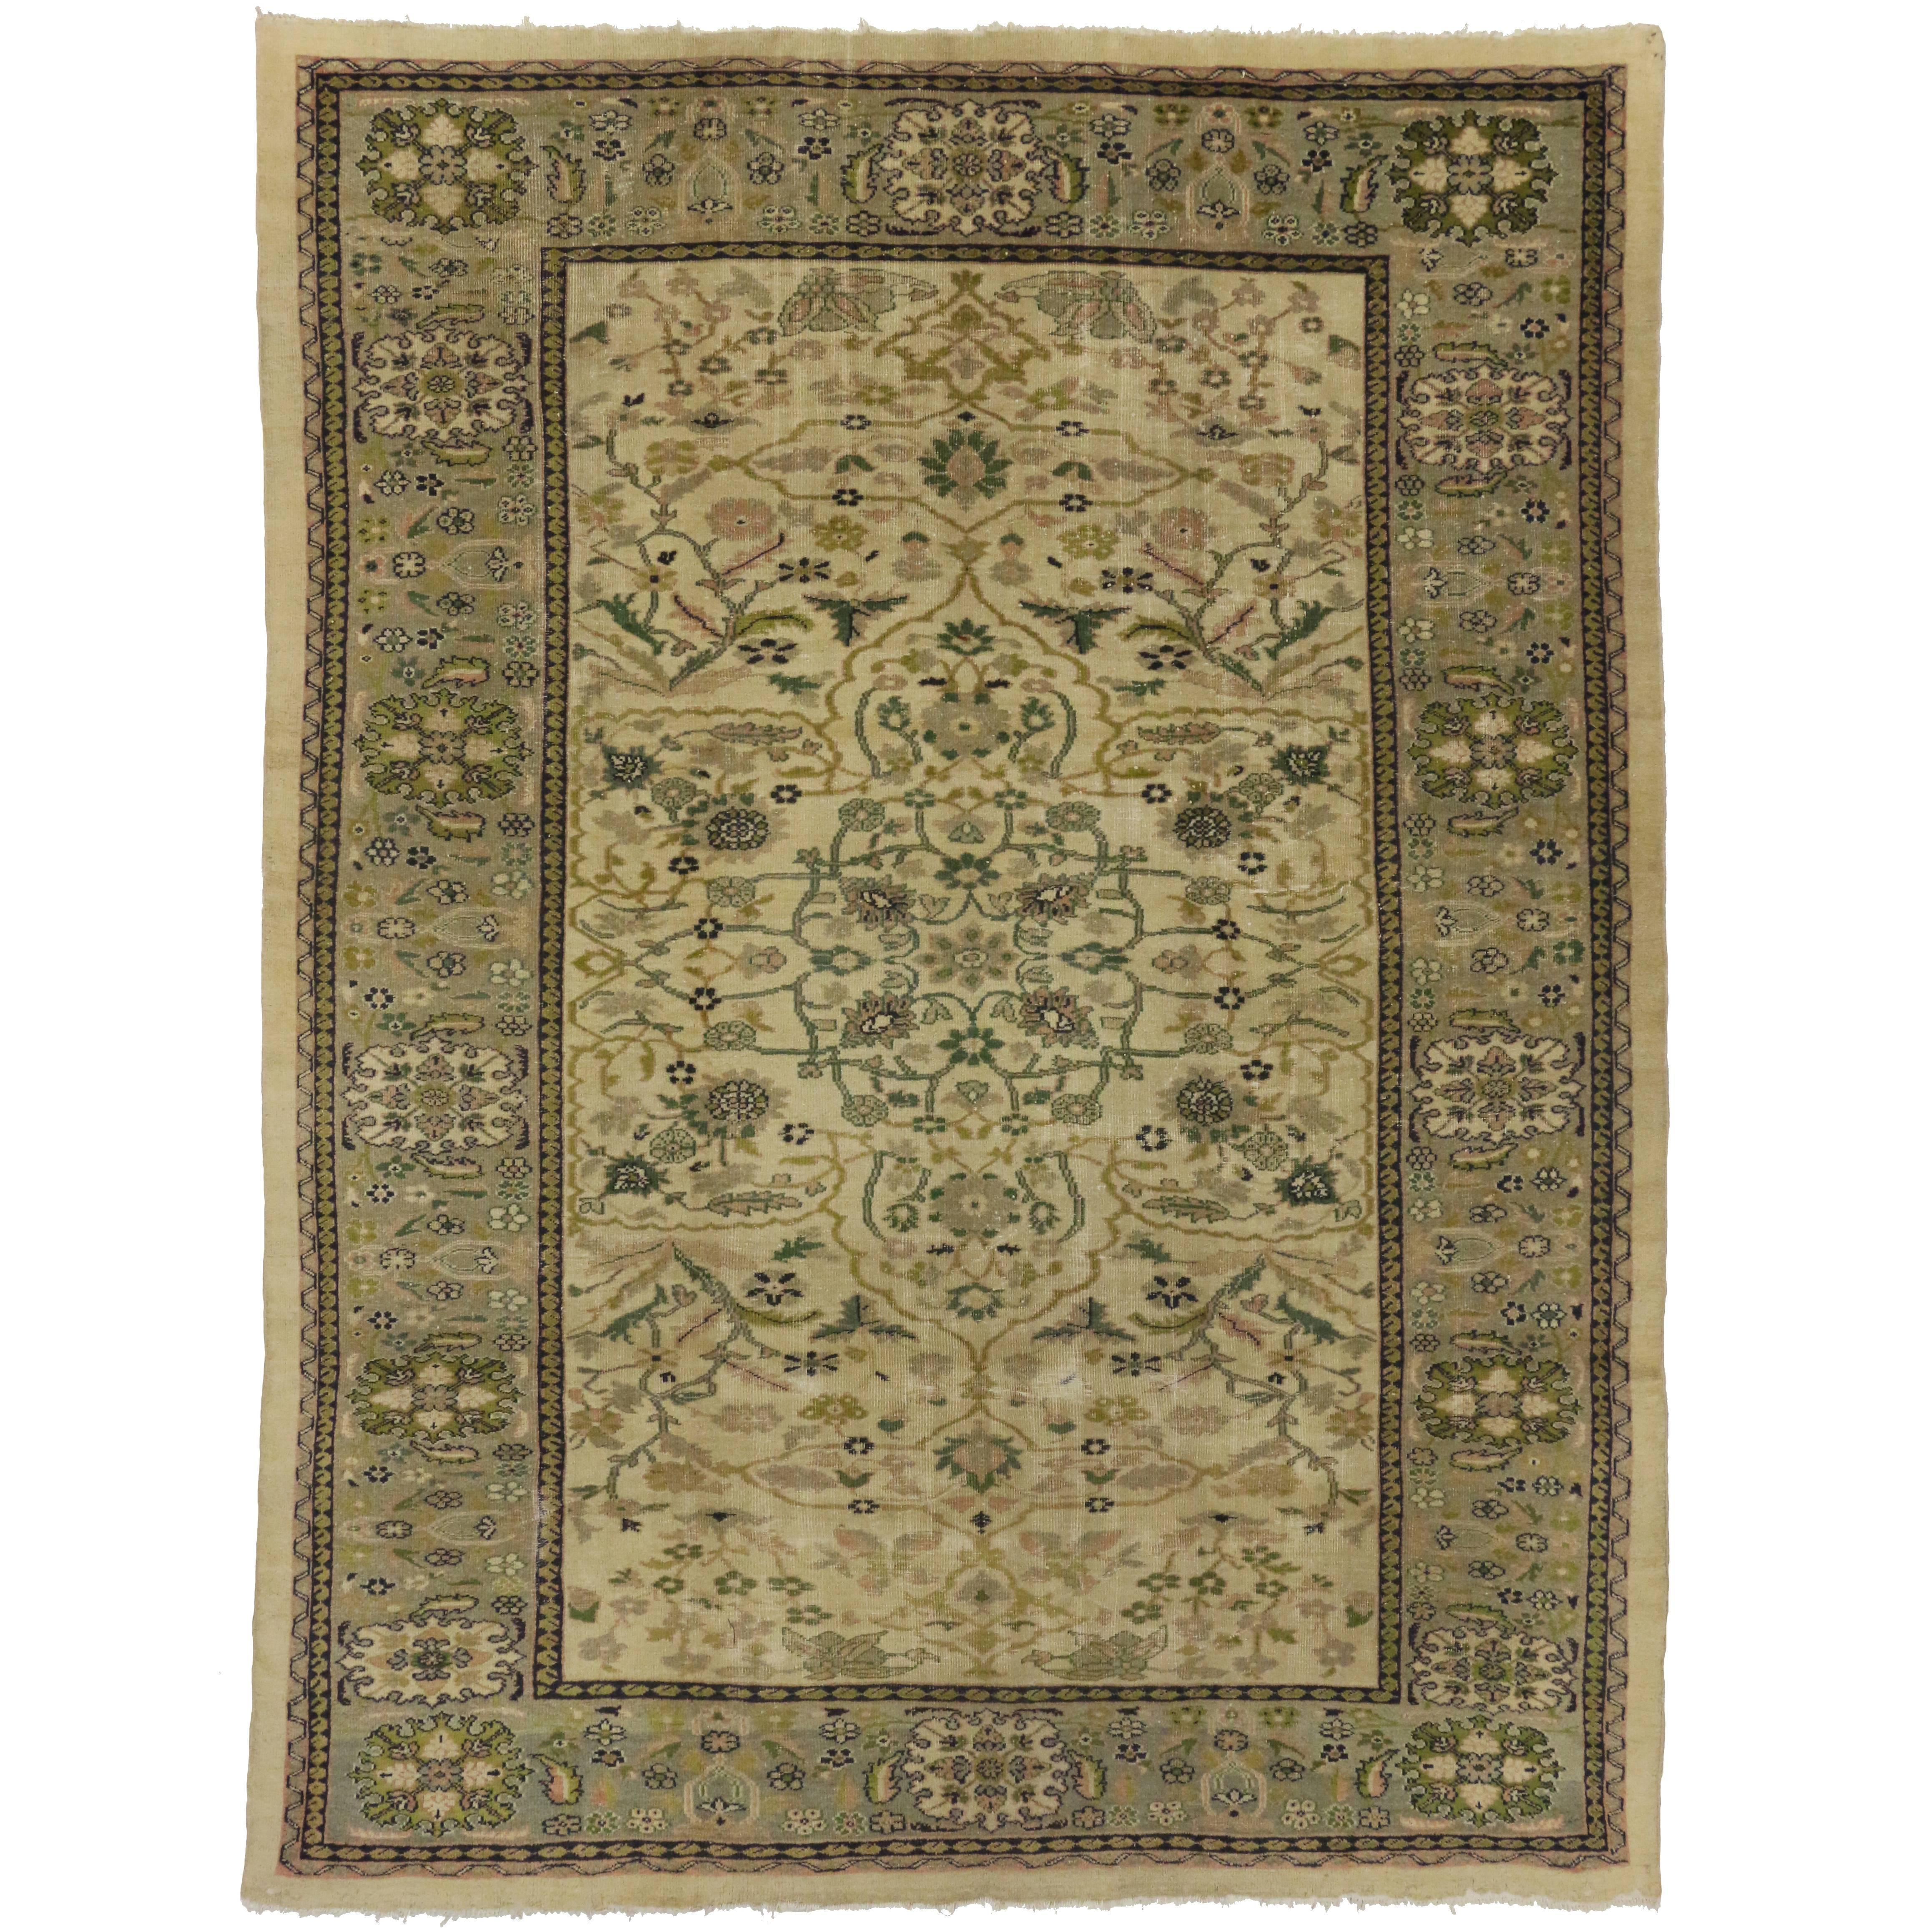 Distressed Antique Persian Sultanabad Rug with English Country Cottage Style